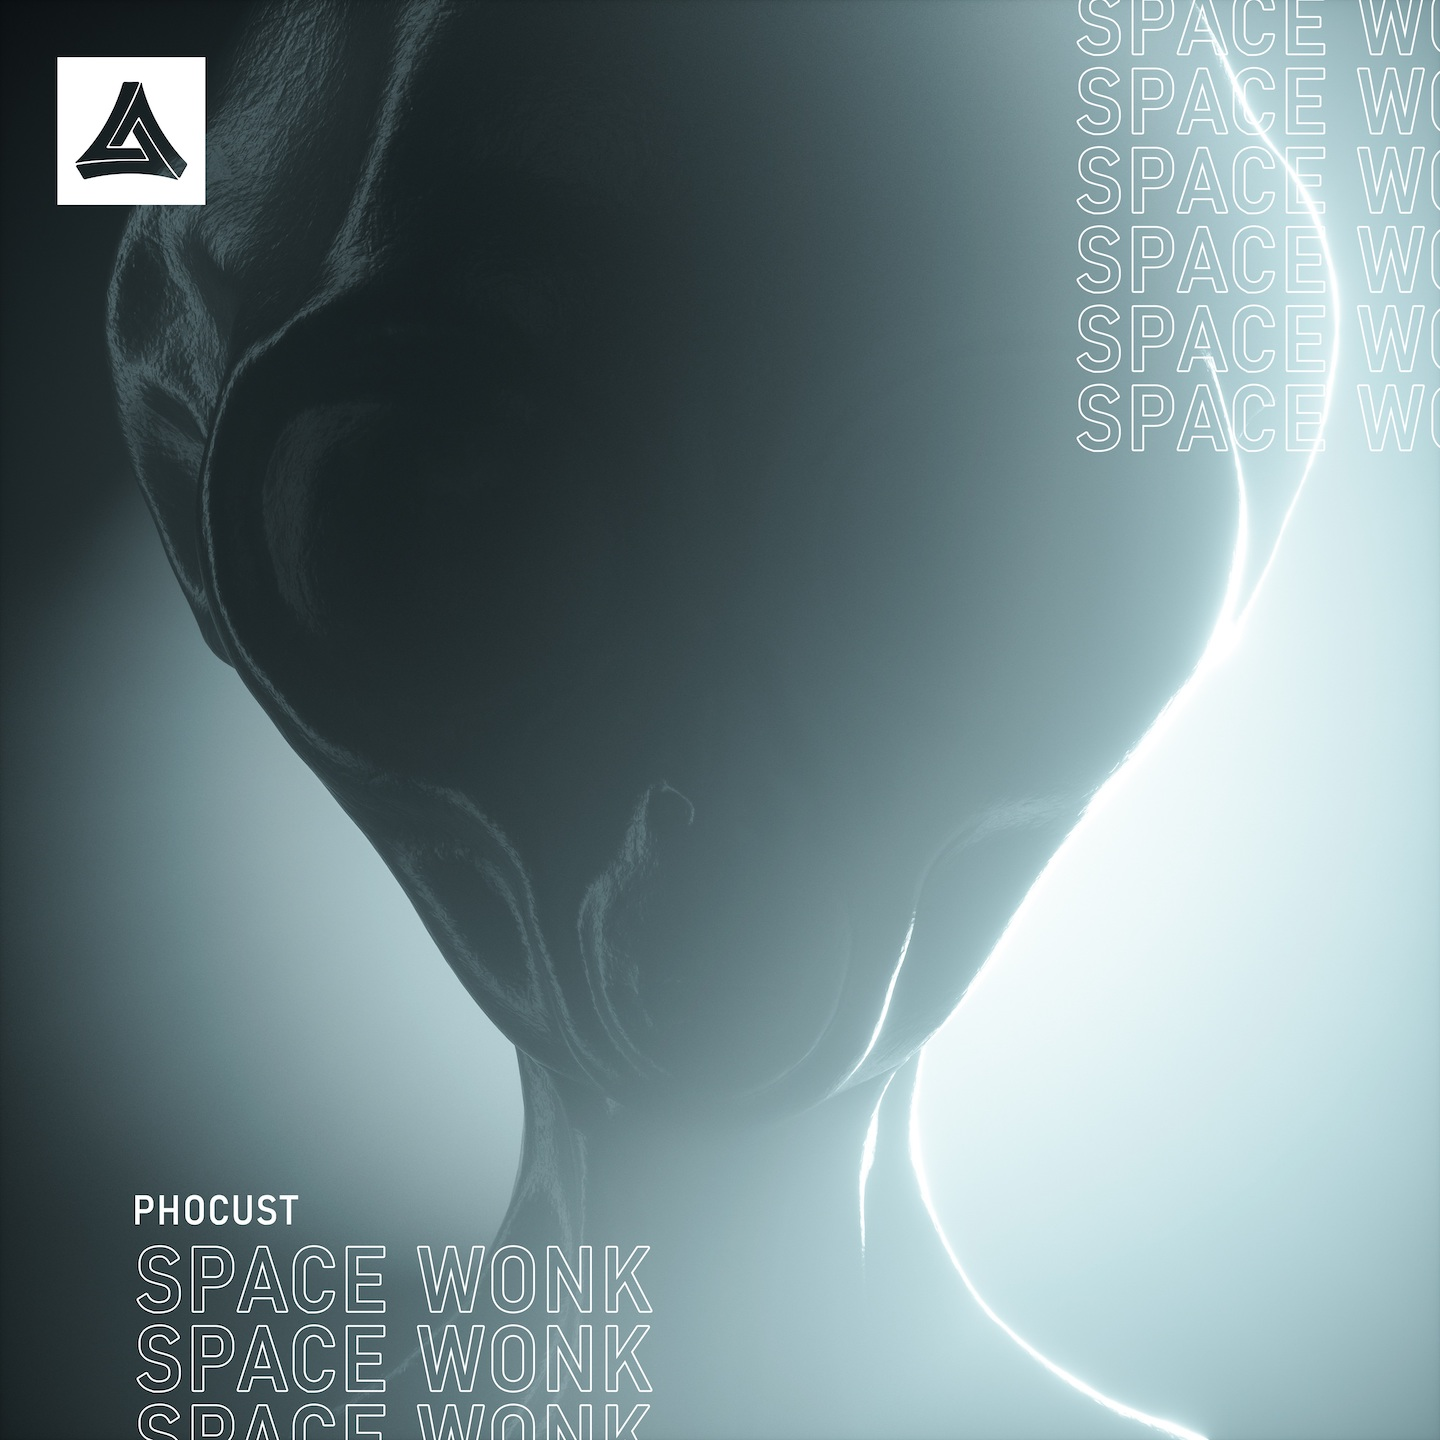 Phocust Releases Bass Heavy Space Wonk EP